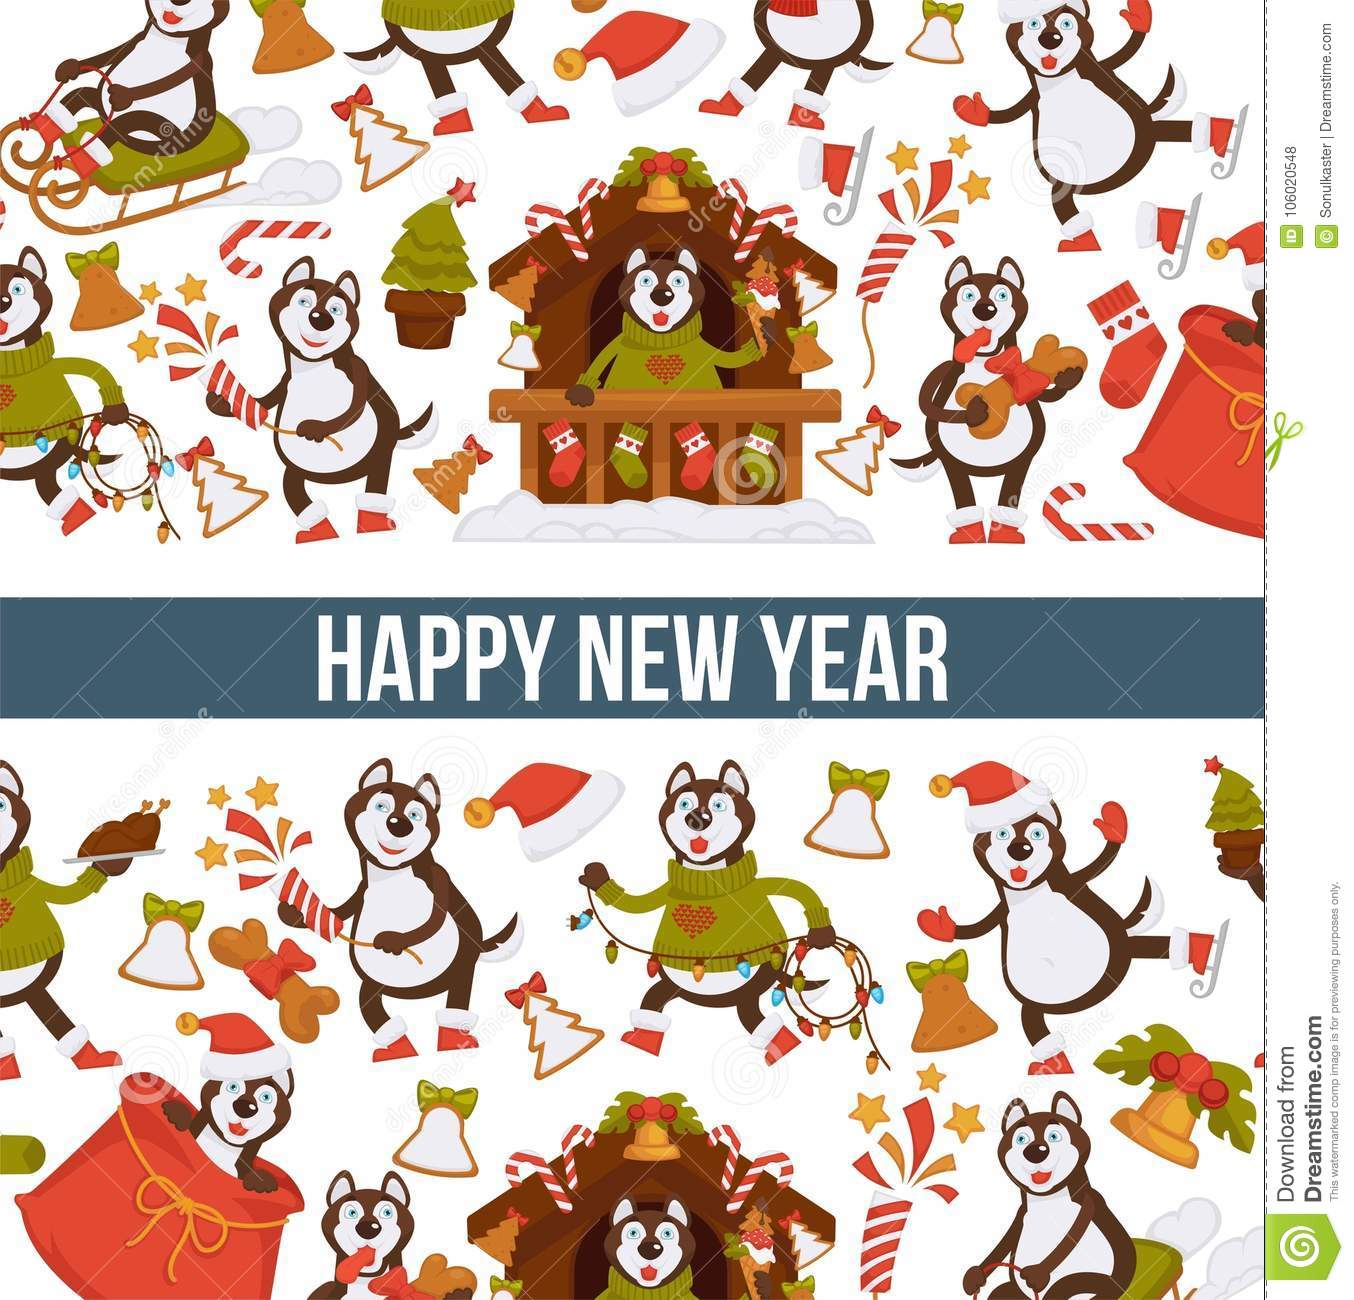 happy new year 2018 cartoon dog celebrating holidays greeting card design template